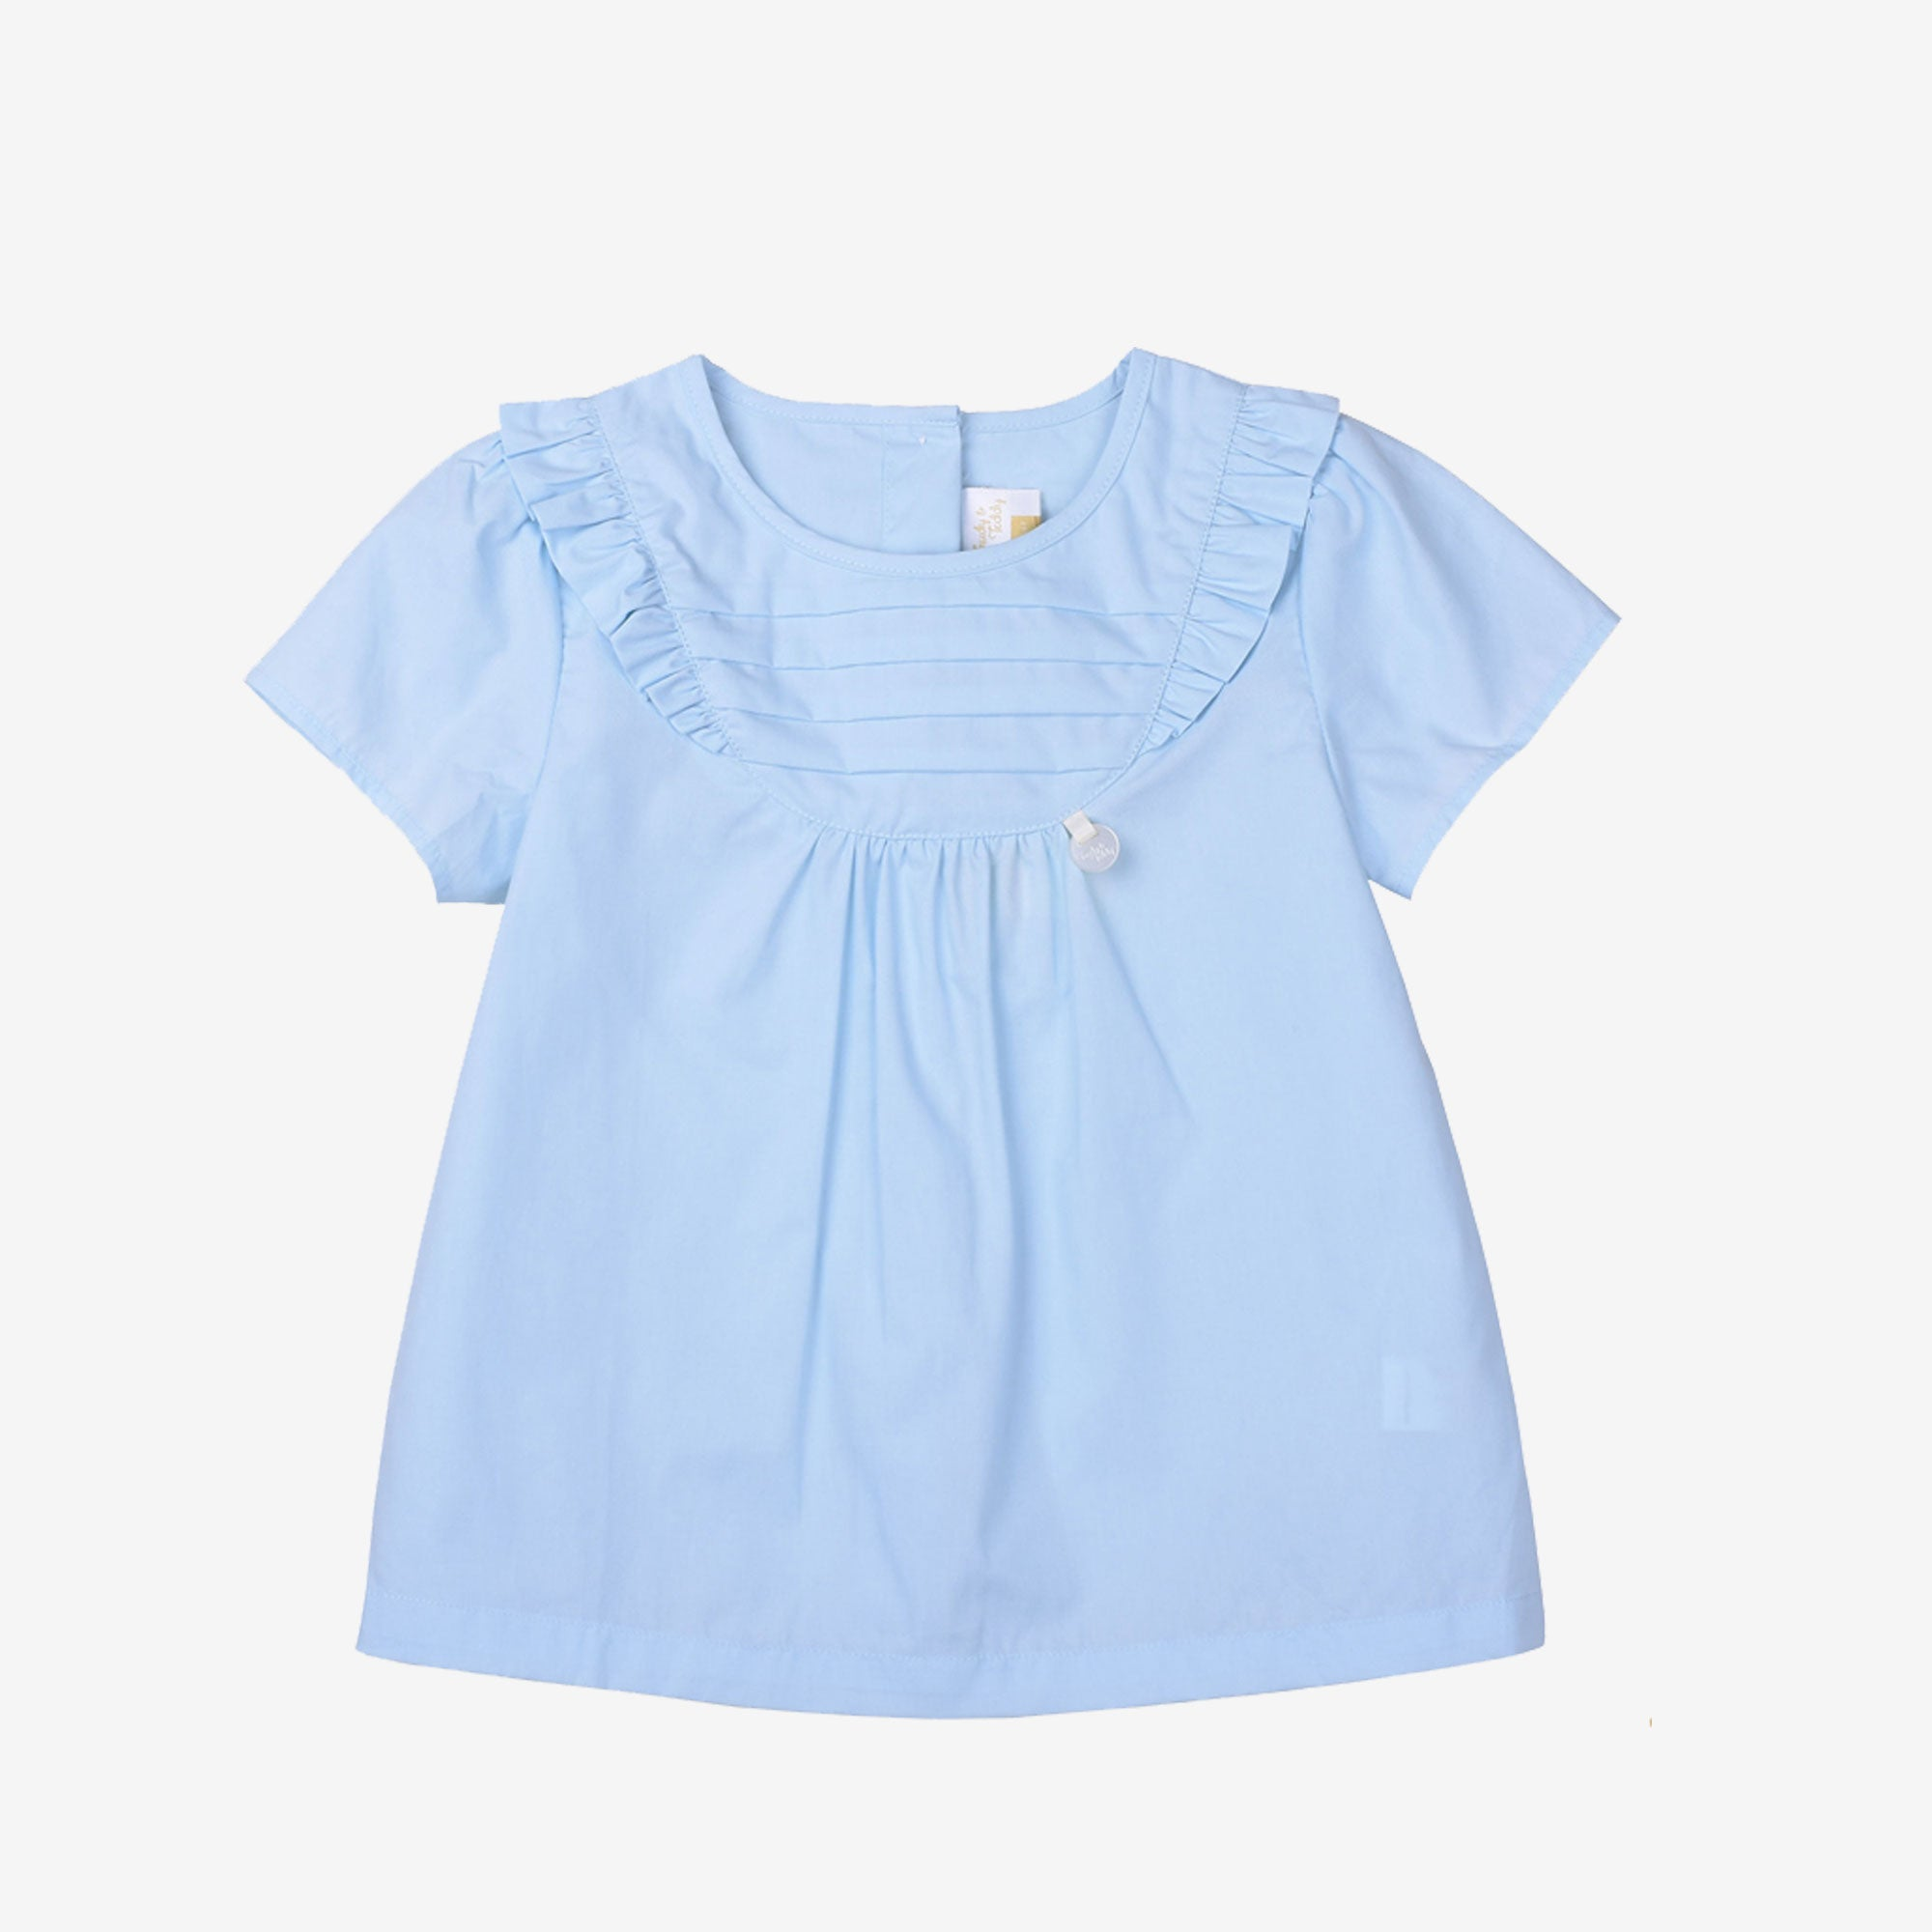 Toddler Girl Short Sleeve Blouse with Ruffles - Baby Blue